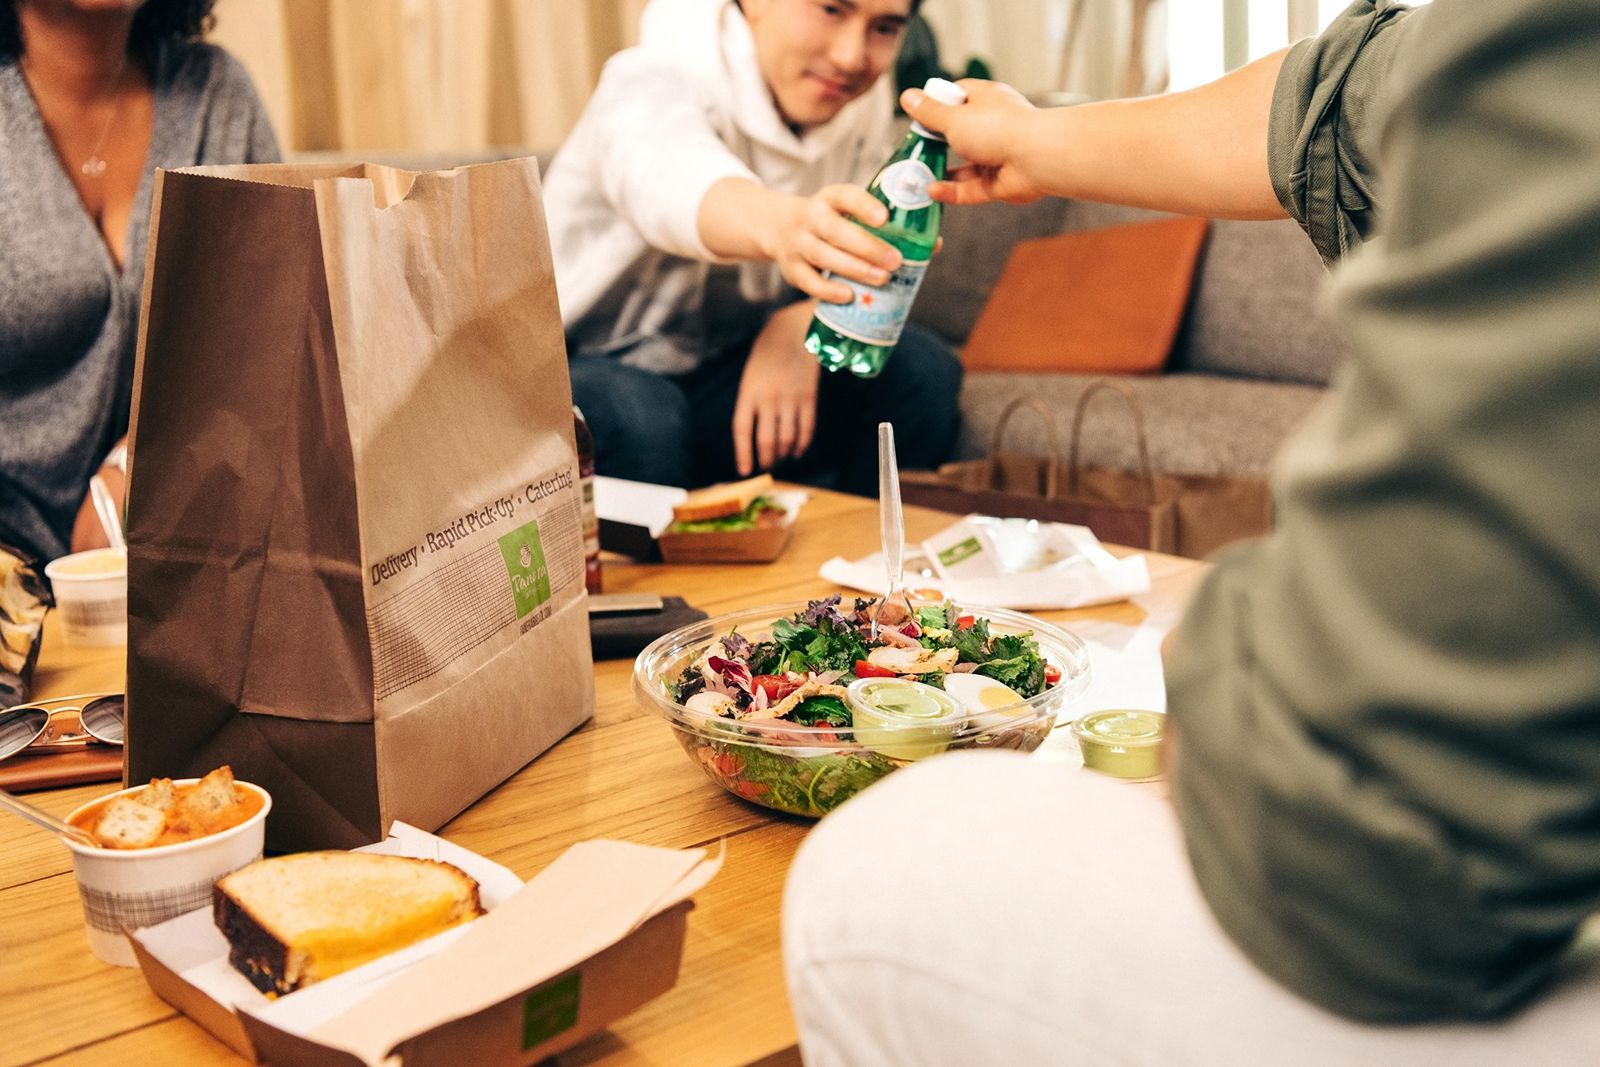 Panera Makes It Easier to Provide Clean, Wholesome Meals With Free Delivery on $15 Orders Through March 31